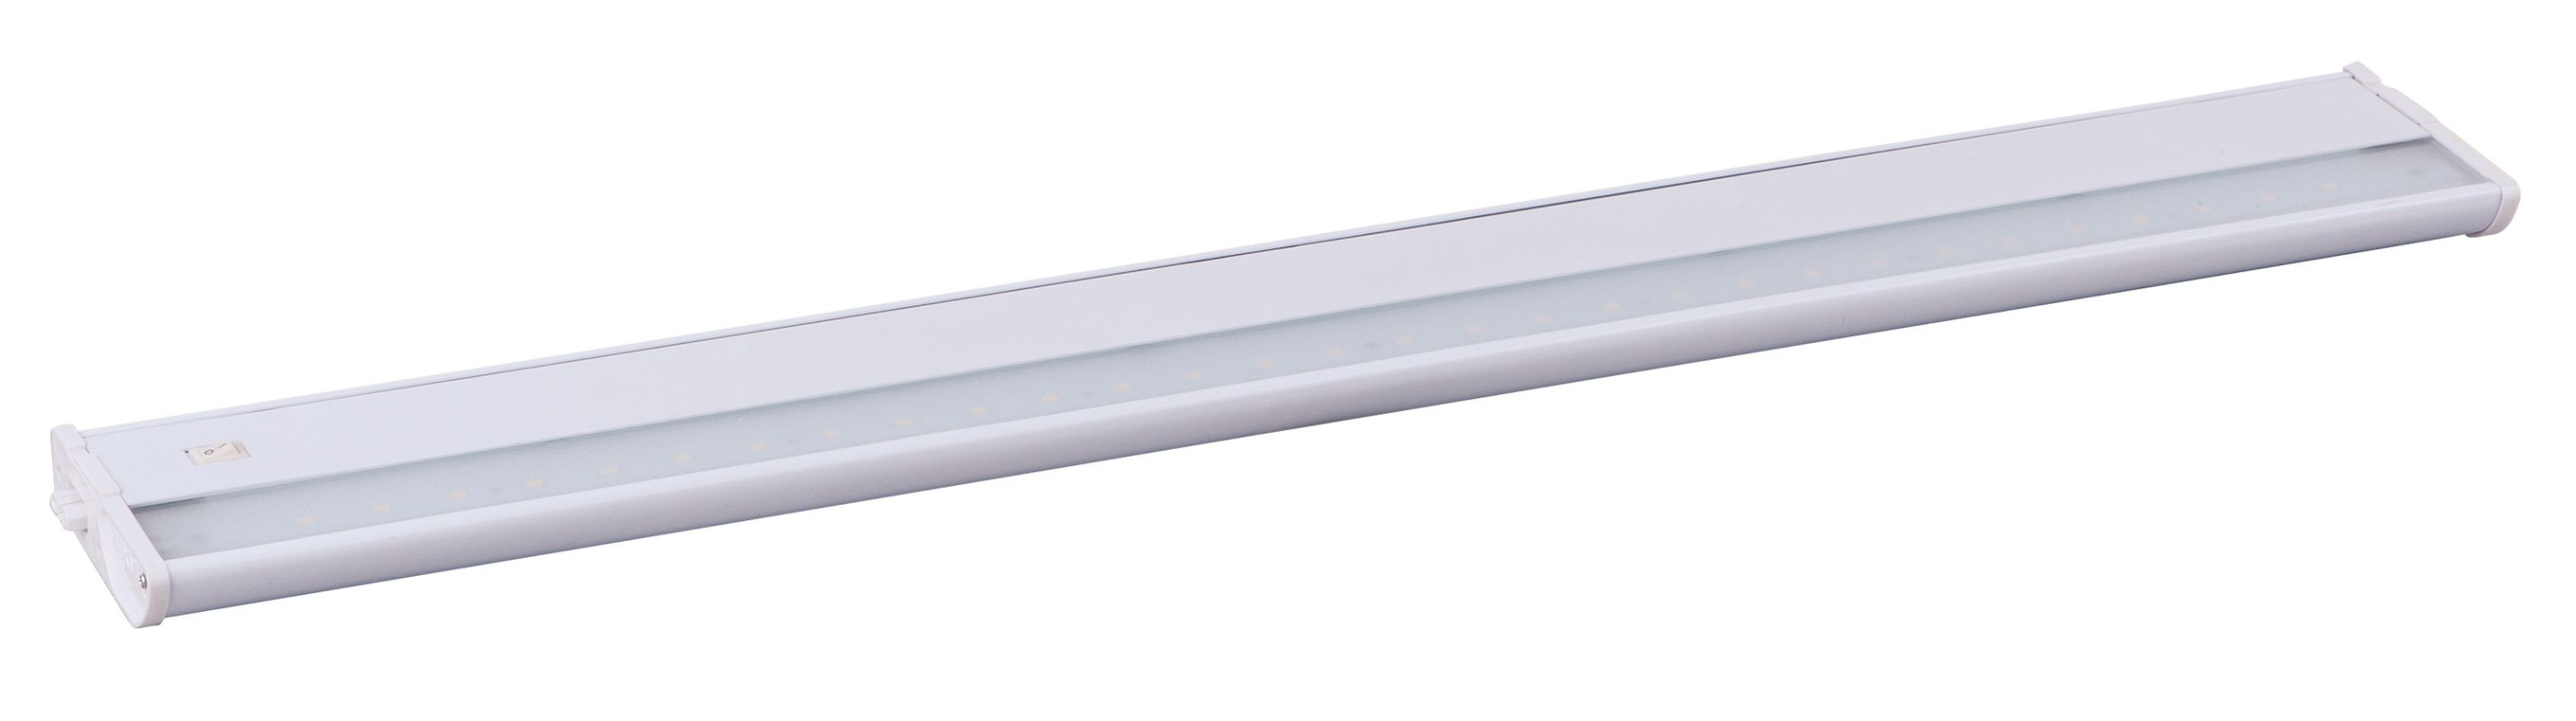 "Maxim 89976 30"" 3000K LED Under Cabinet Light from the CounterMax"